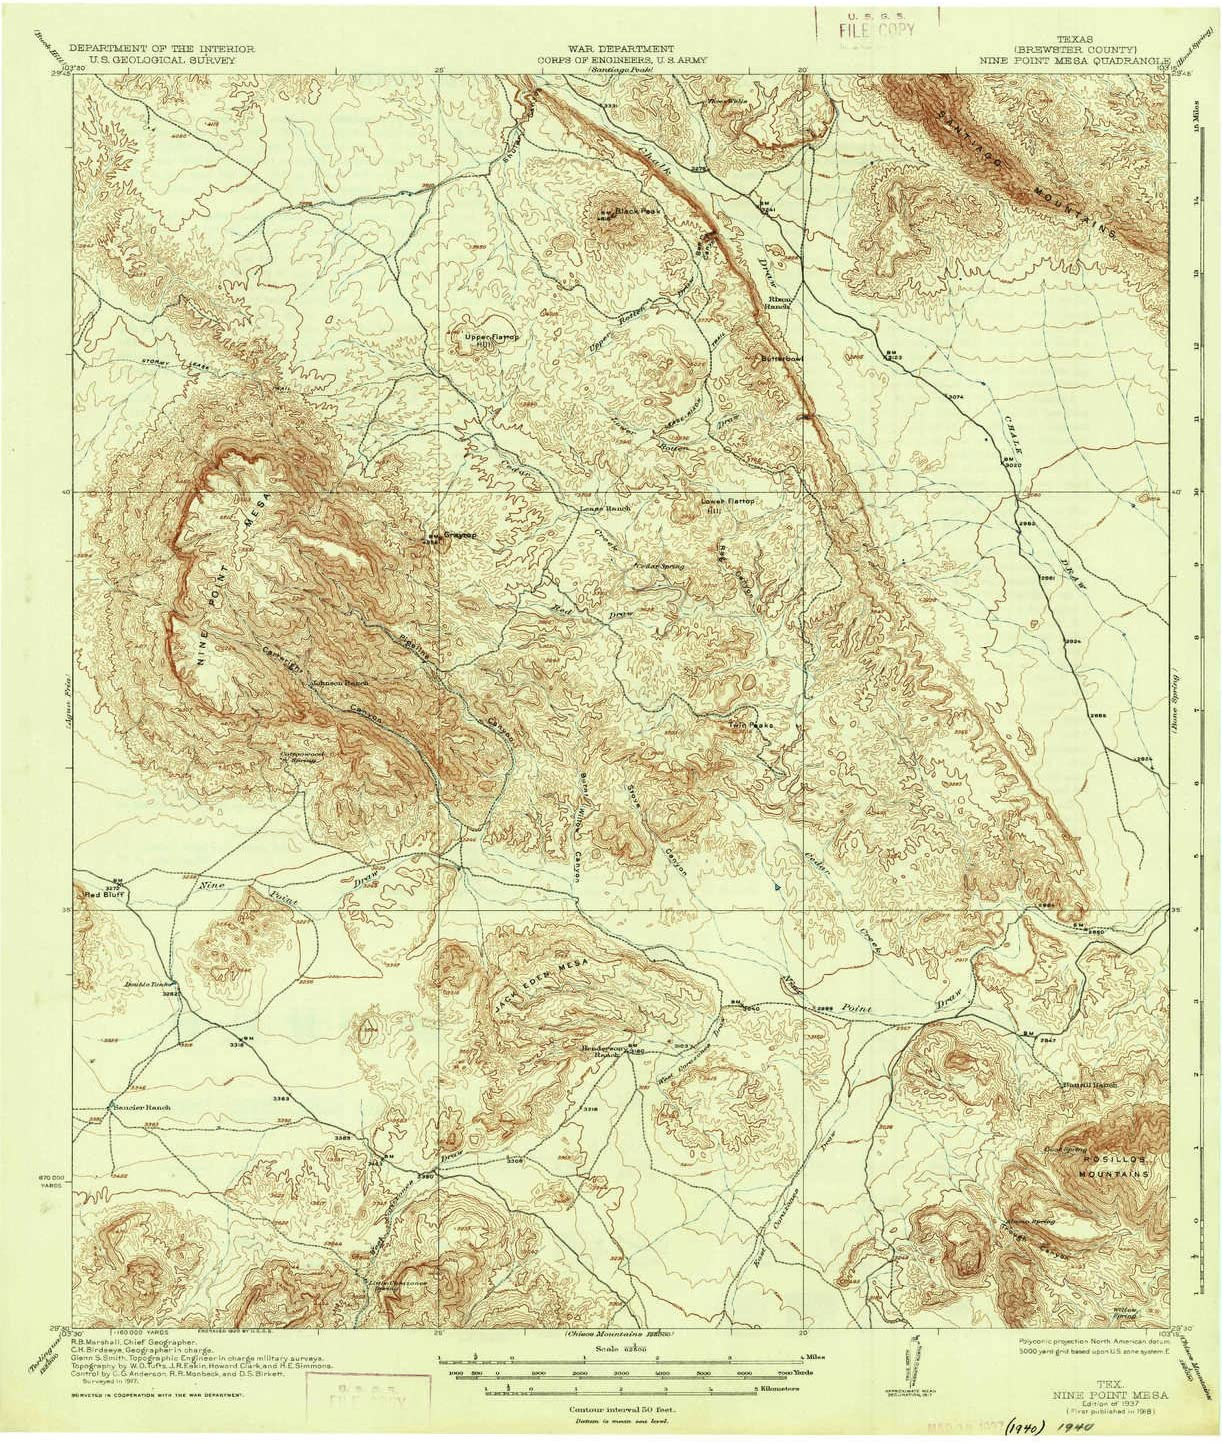 20.9 x 17 in 15 X 15 Minute 1:62500 Scale YellowMaps Nine Point Mesa TX topo map 1937 Historical